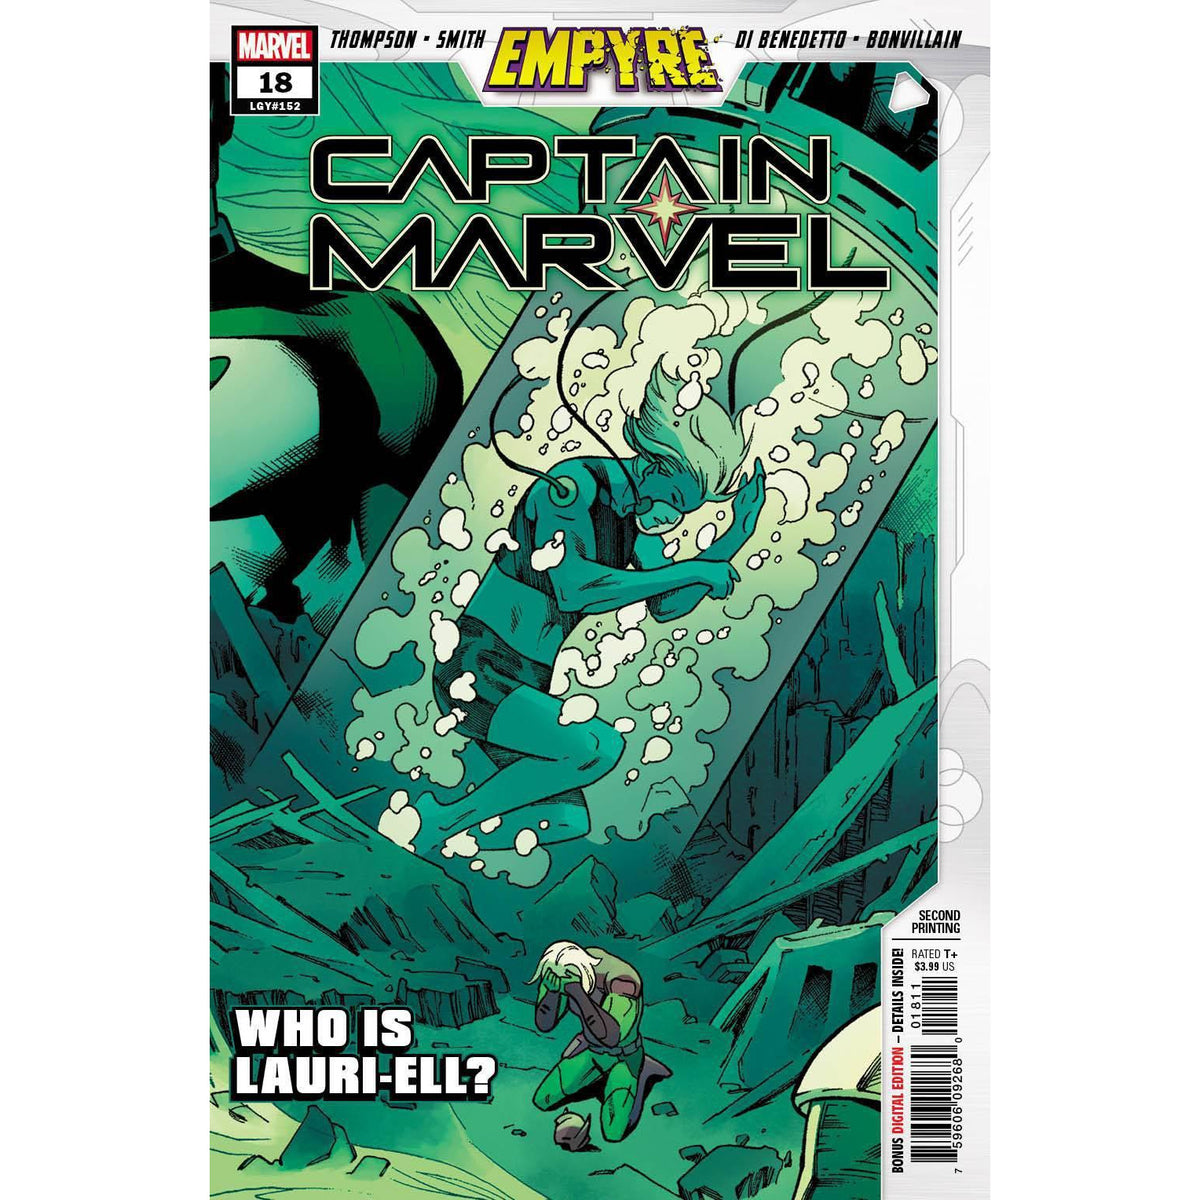 CAPTAIN MARVEL #18 2ND PRINTING SMITH VARIANT